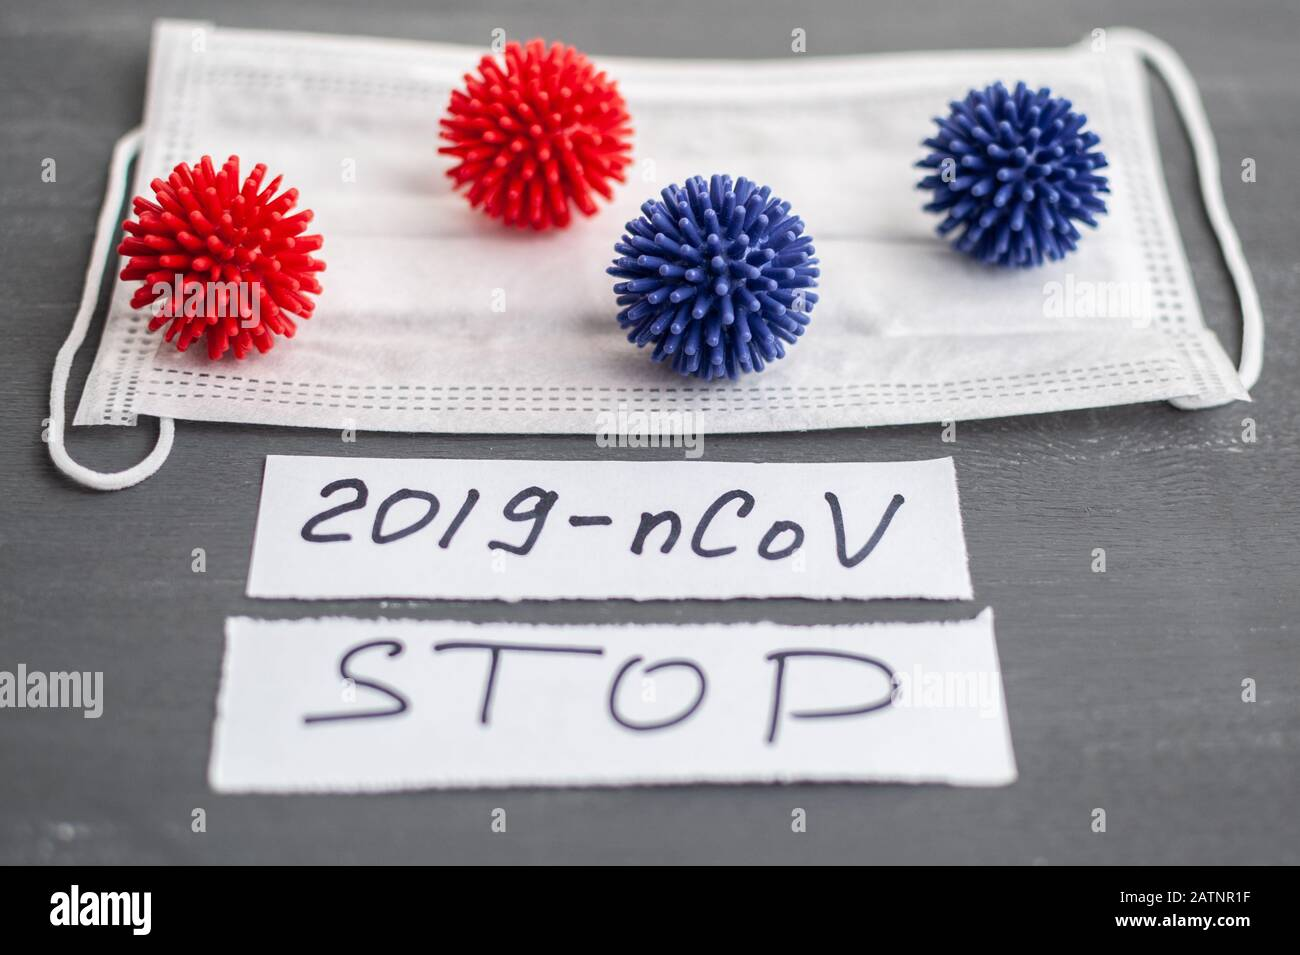 Abstract coronavirus strain model from Wuhan, China. Outbreak Respiratory syndrome and Novel coronavirus 2019-nCoV with free space on grey background. Stock Photo